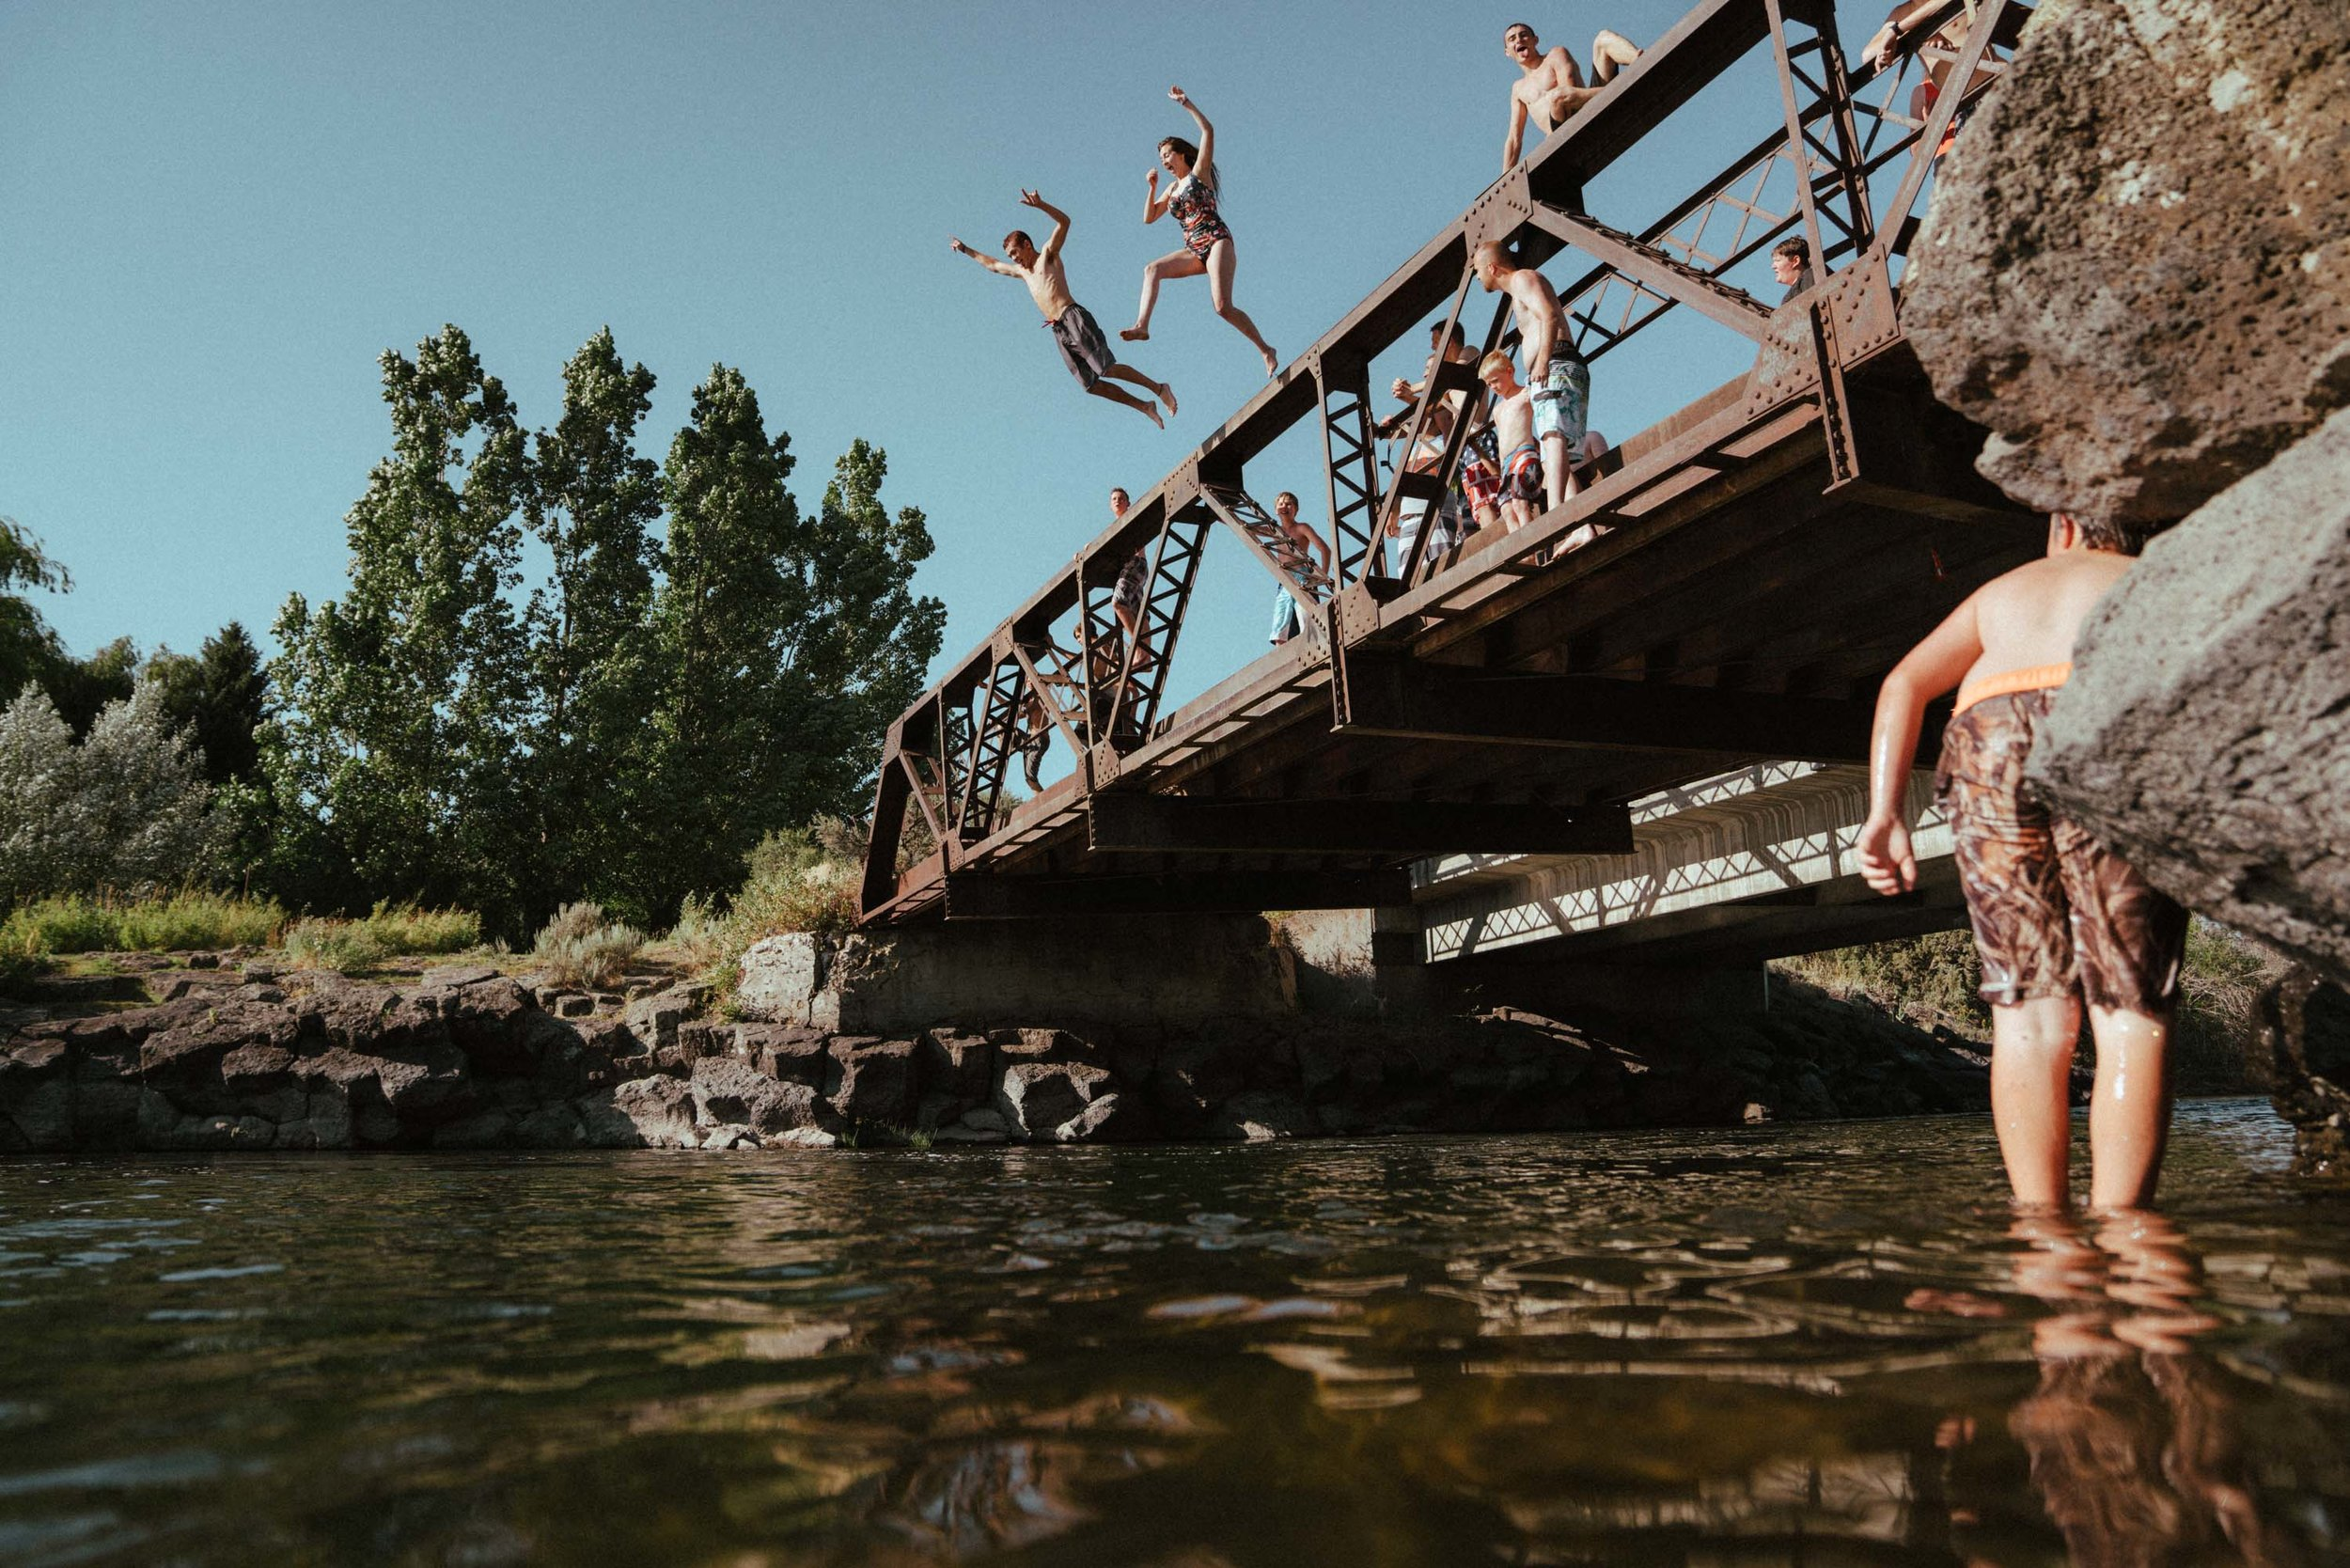 idaho-bridge-jumping-86.jpg